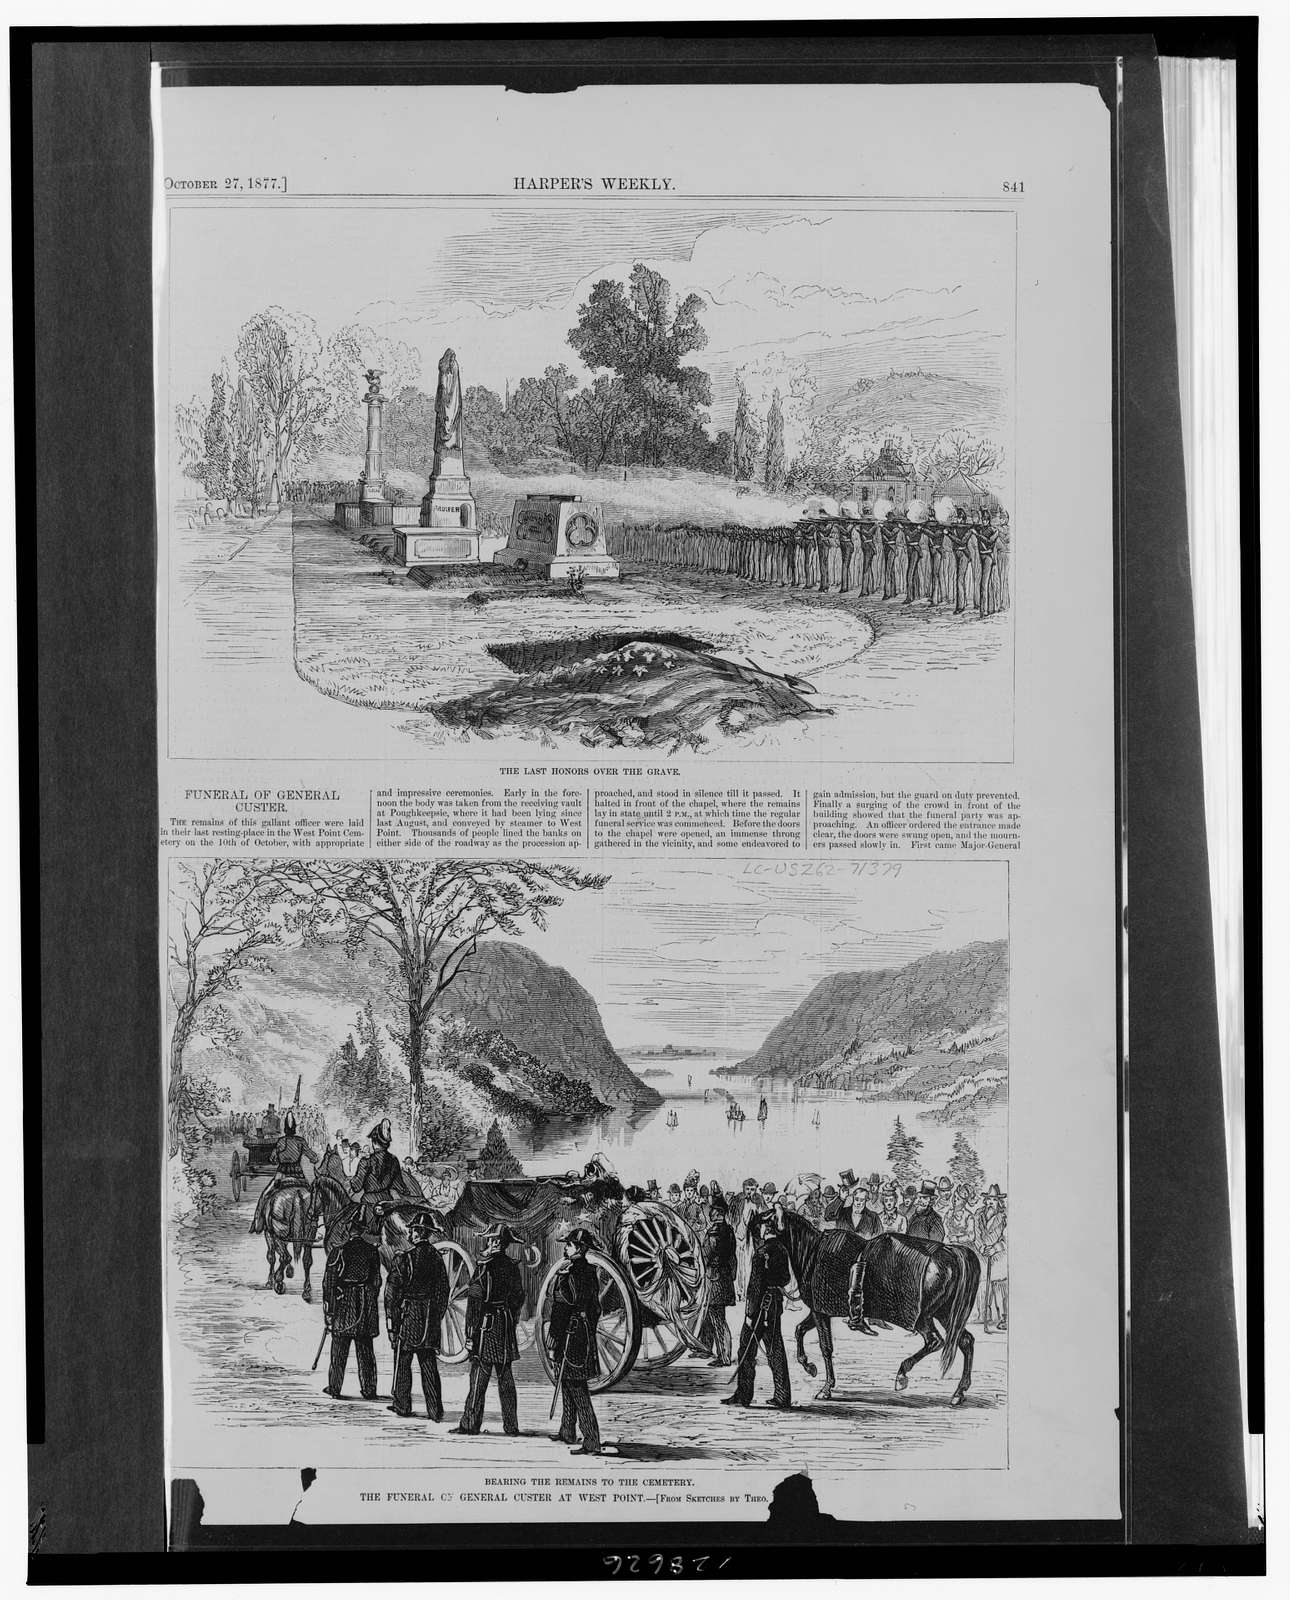 The funeral of General Custer at West Point / from sketches by Theo. [...].